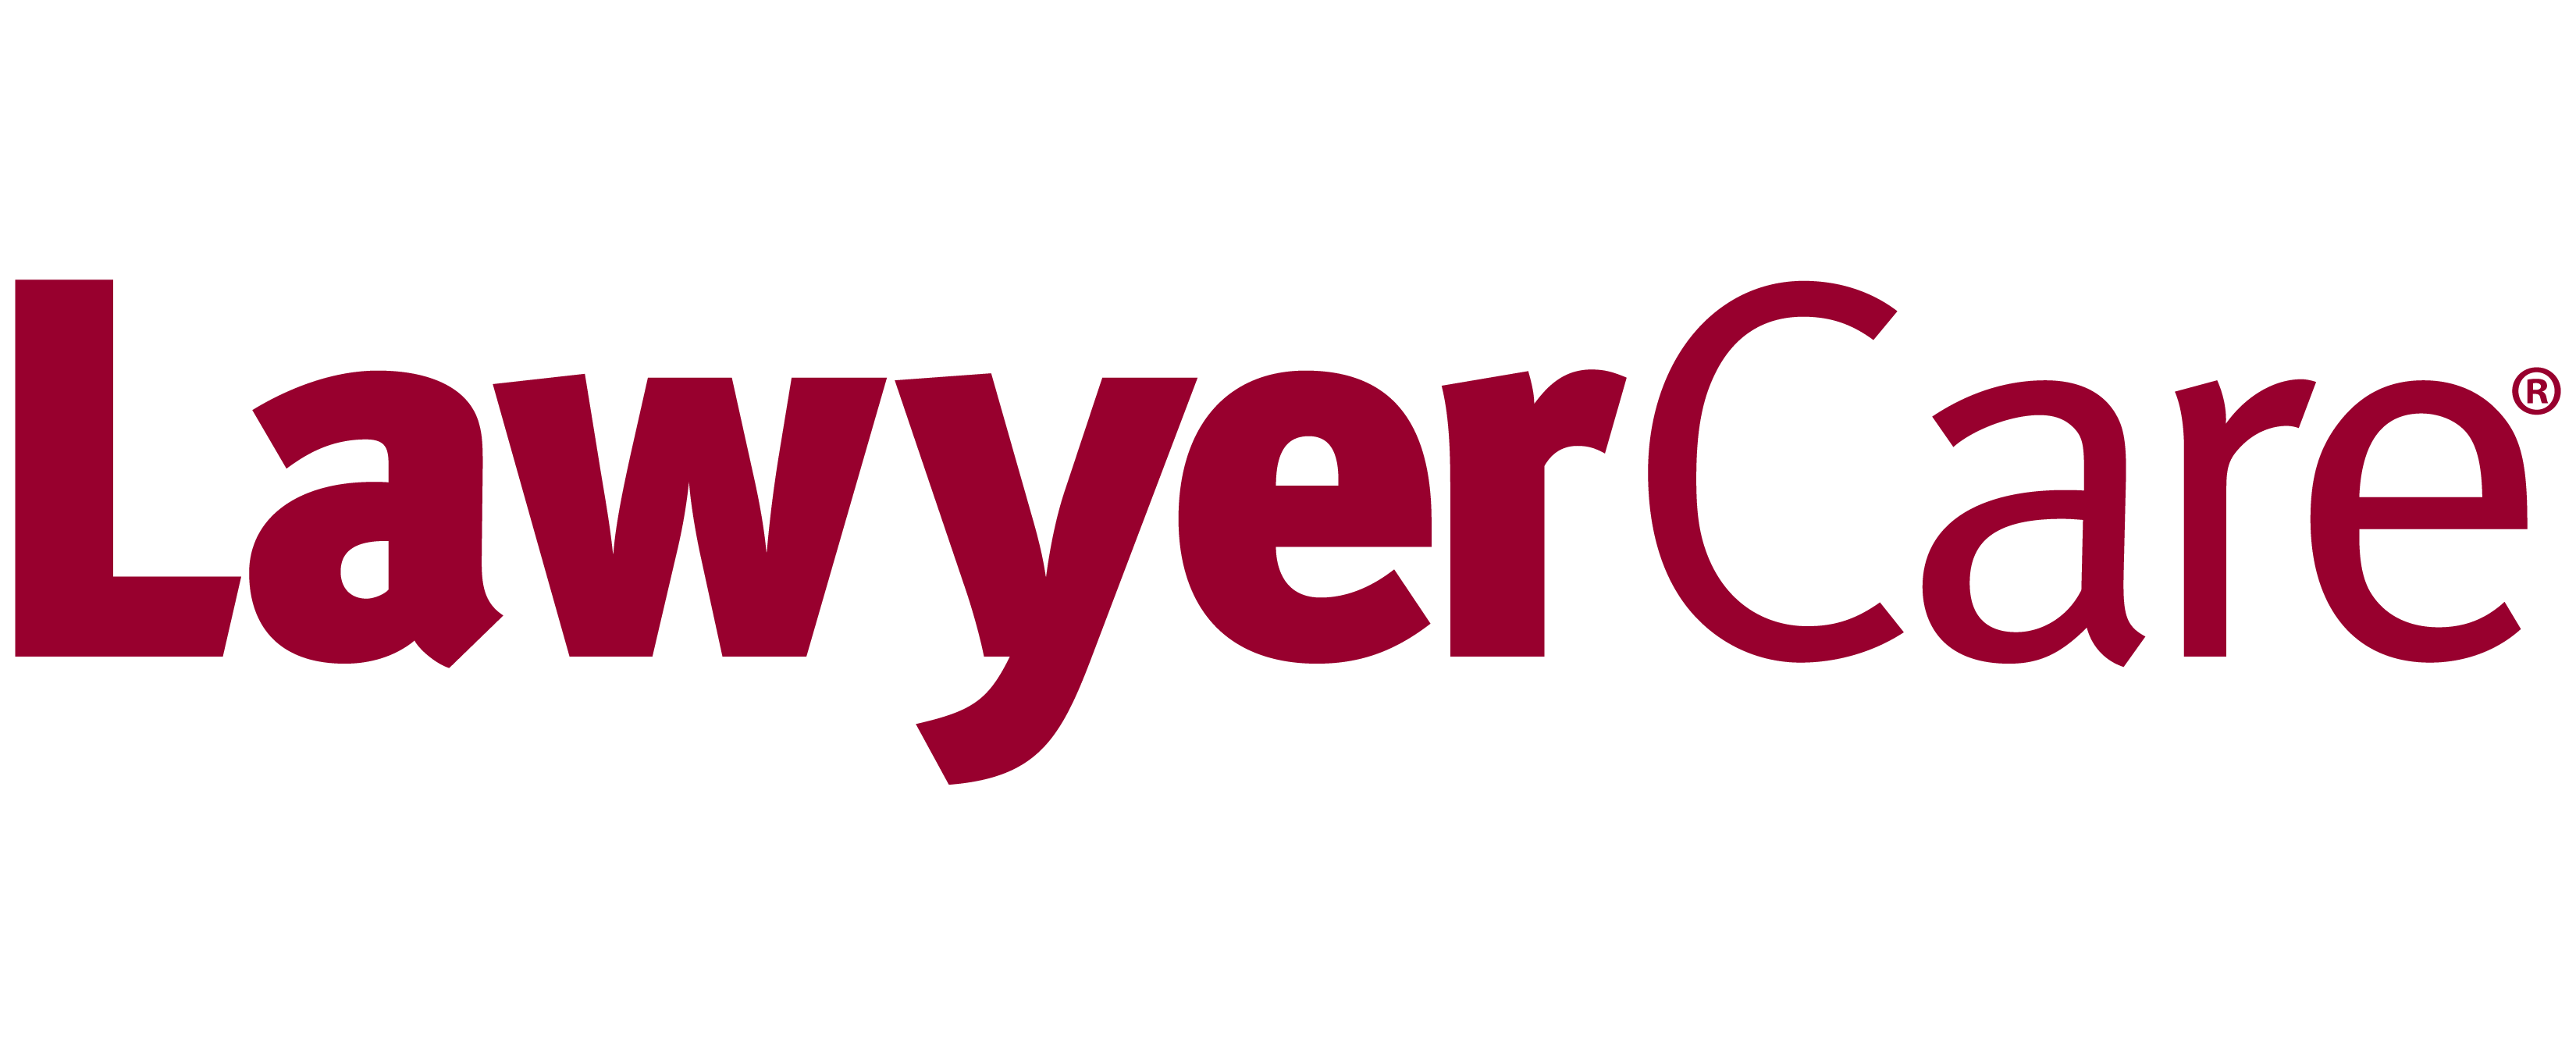 LawyerCare